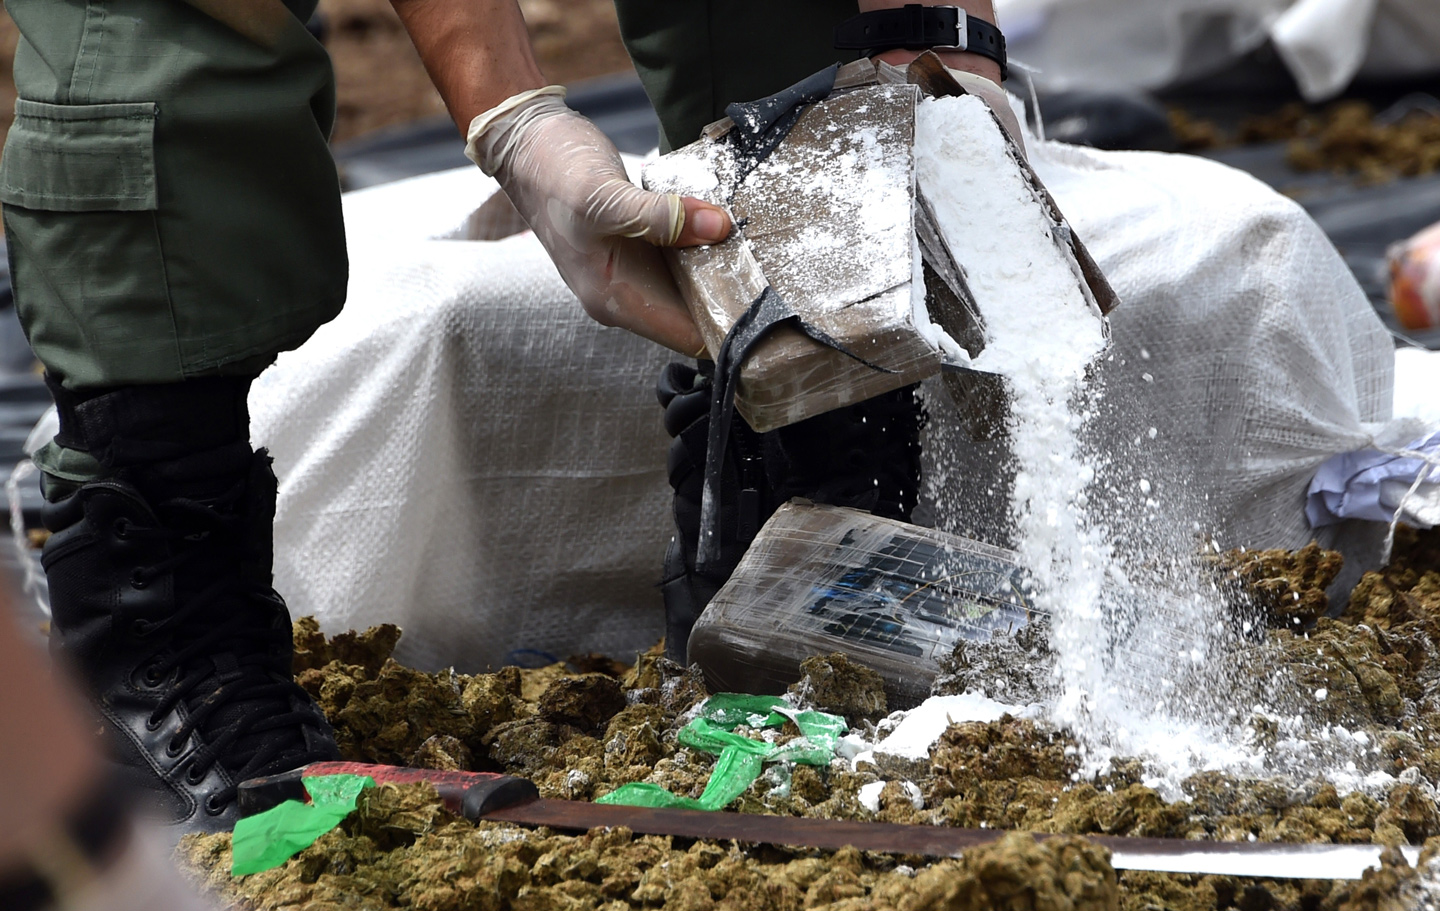 Panama's anti-narcotics personnel prepare to burn over 10 tons of cocaine and marijuana in Cerro Patacon, a dump near Panama City, on October 16, 2015. AFP PHOTO/ Rodrigo ARANGUA        (Photo credit should read RODRIGO ARANGUA/AFP/Getty Images)